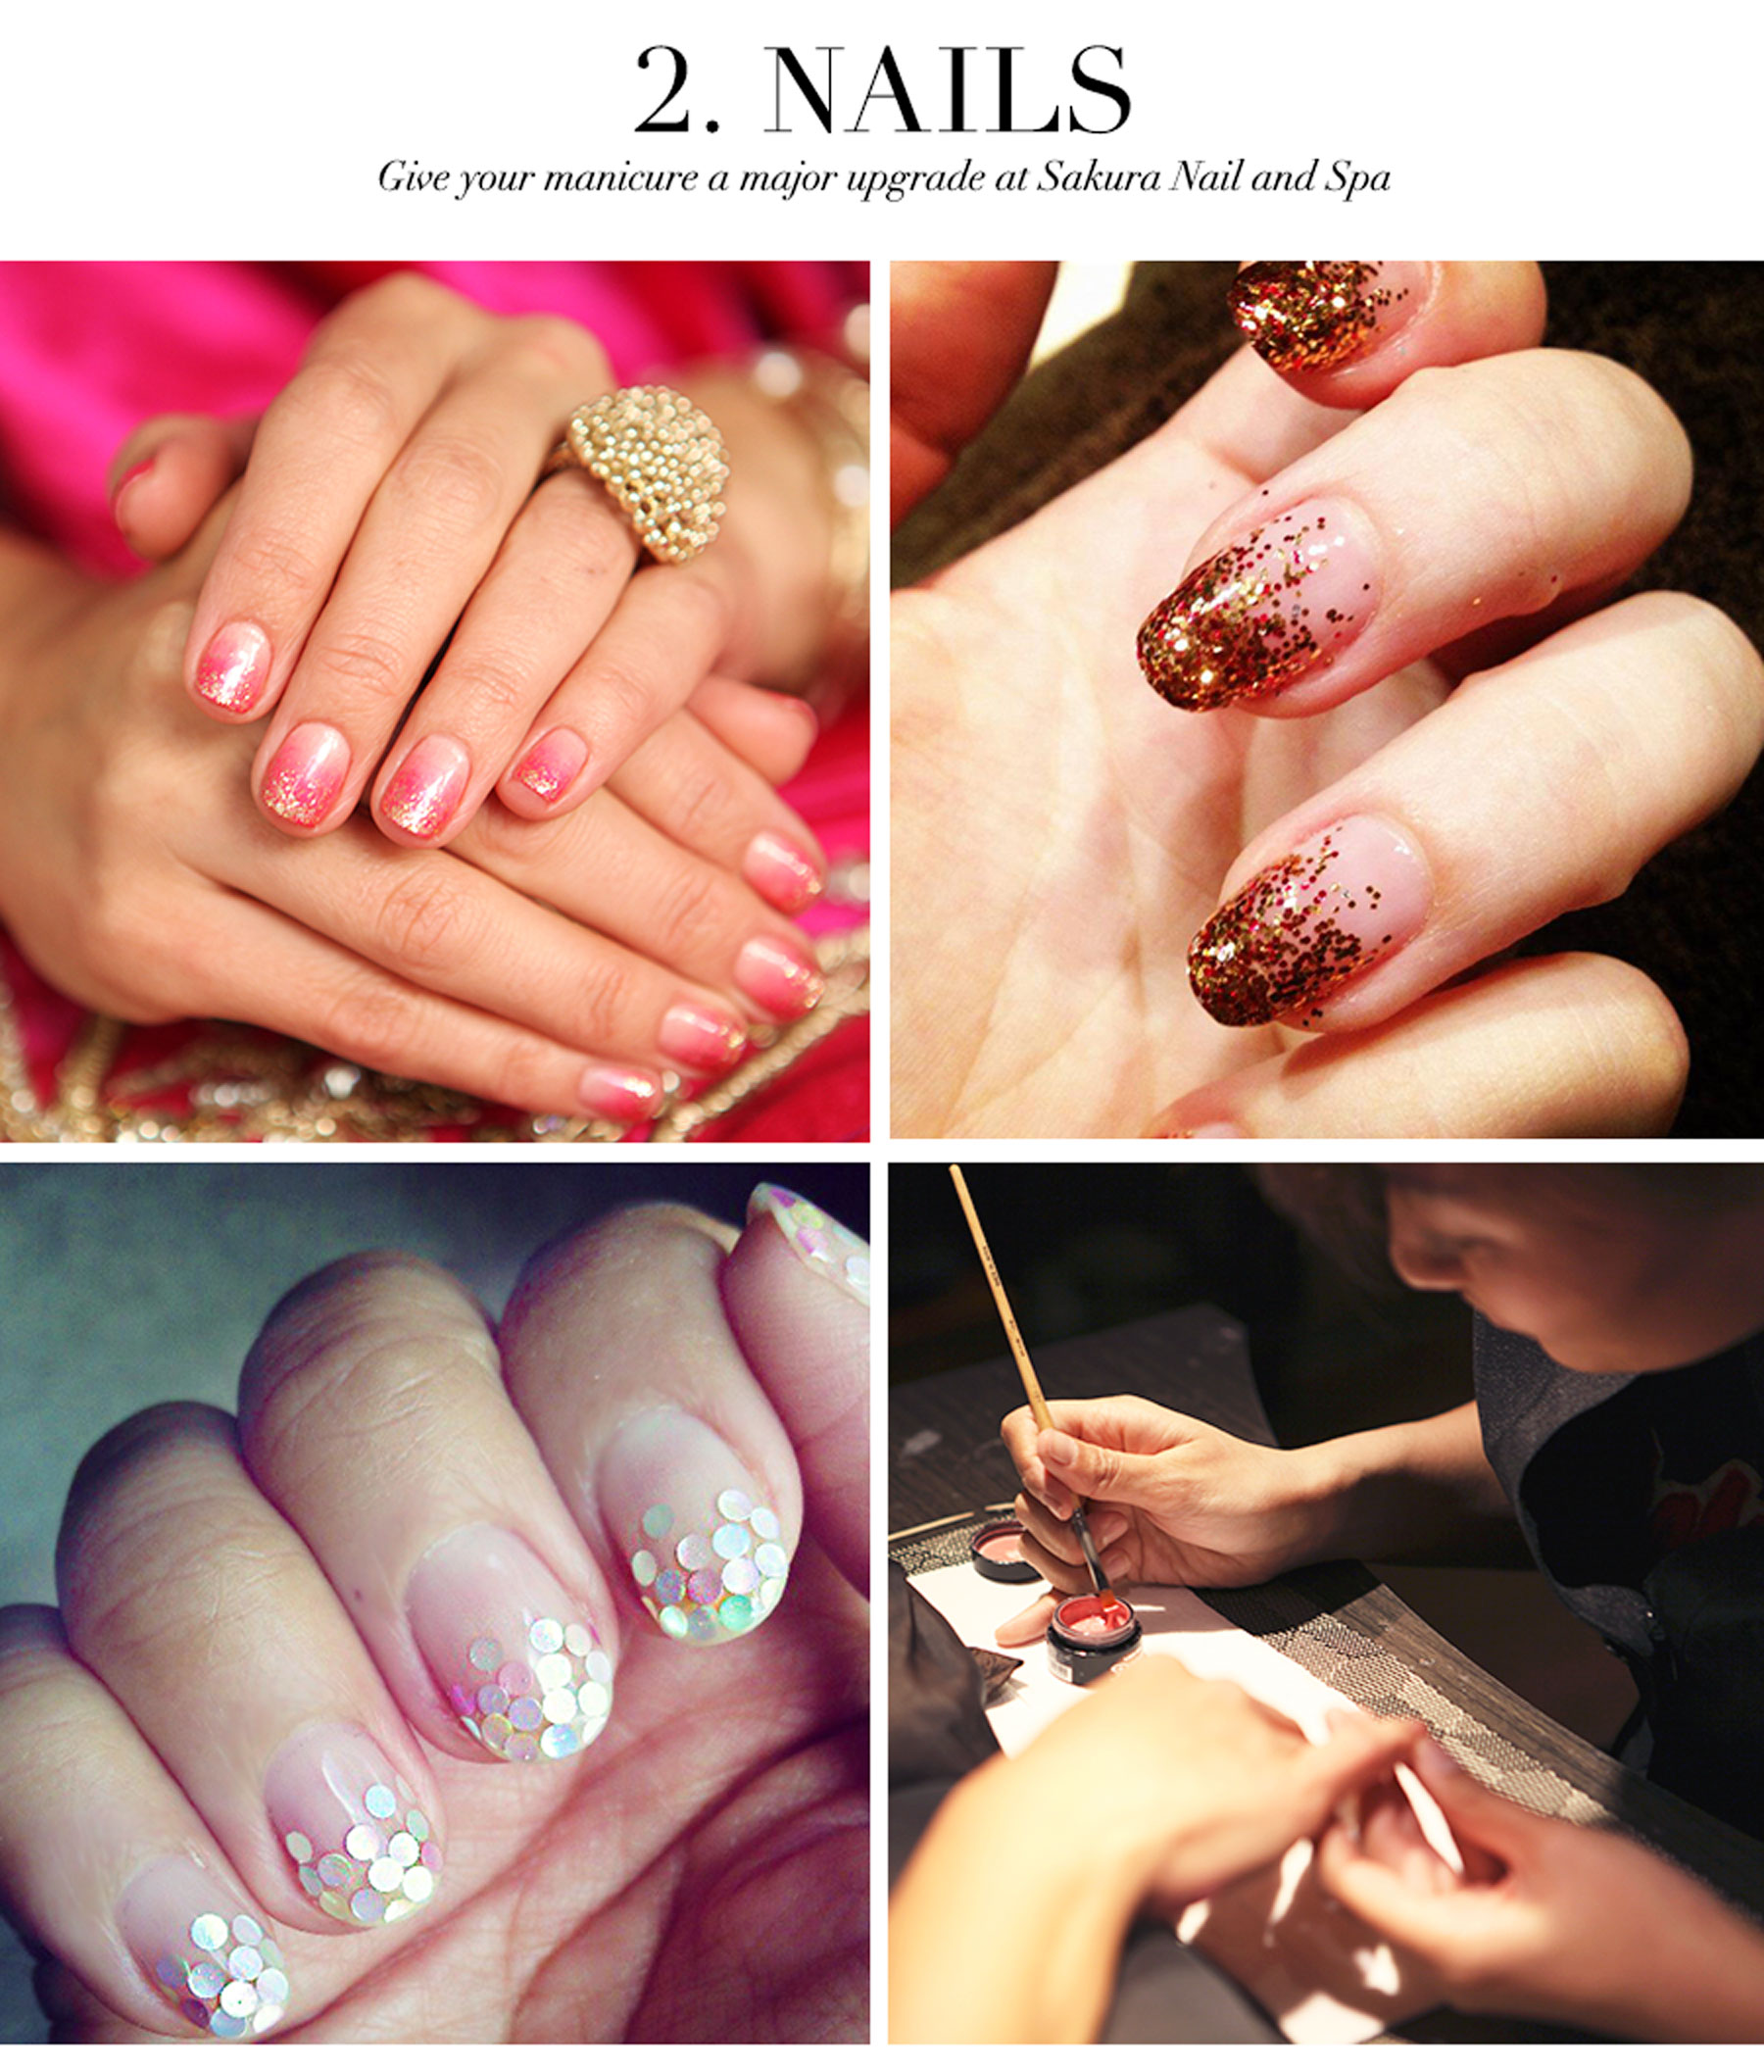 Ceci Johnson's Pamper-Yourself Picks - Nails - Give your manicure a major upgrade at Sakura Nail and Spa